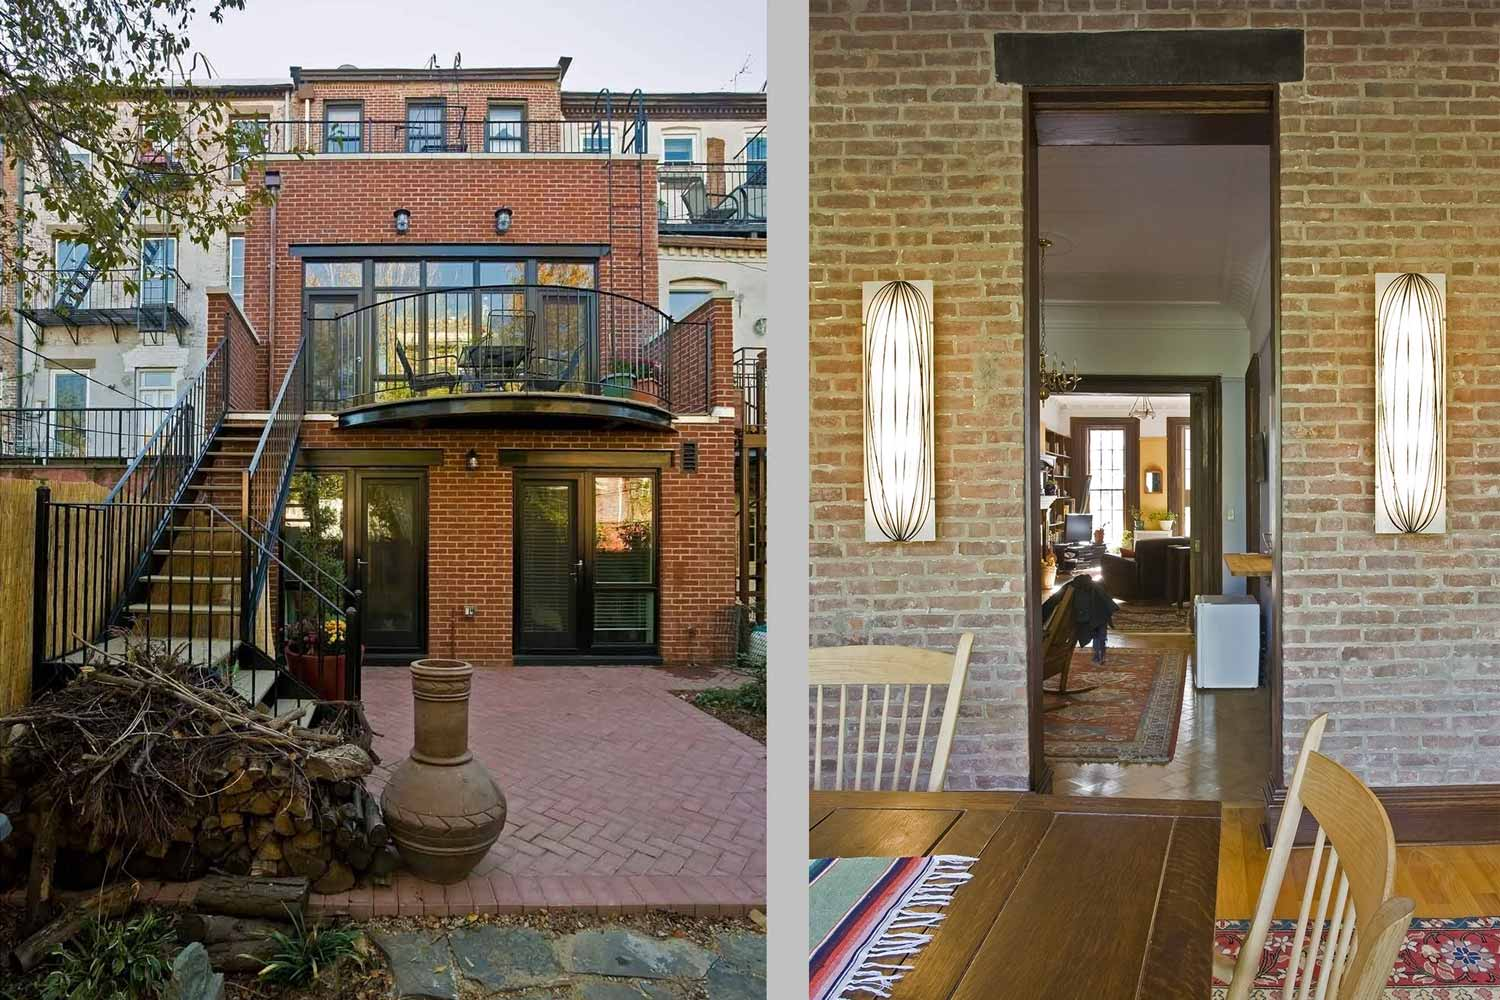 Renovation and extension of an early 20th Century brownstone on Degraw Street in Brooklyn.